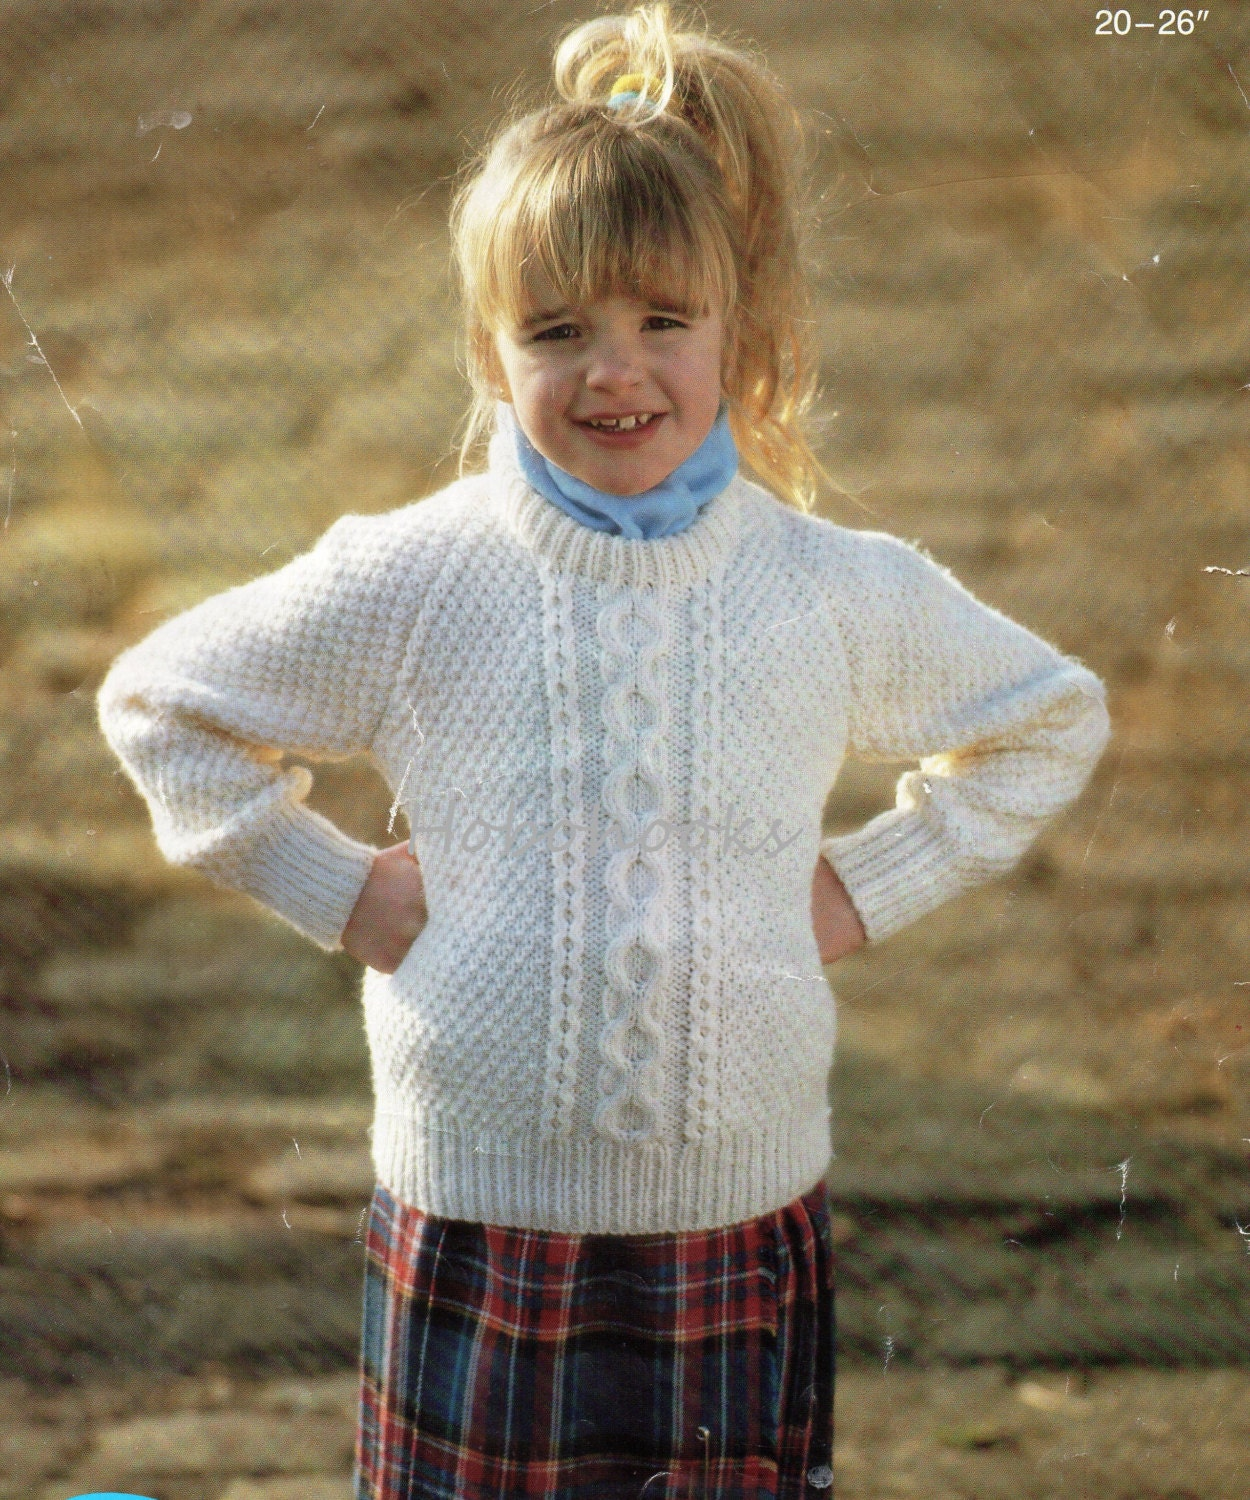 vintage baby childs childrens aran sweater knitting pattern pdf cable jumper crew neck 2026 inch Aran worsted 10ply PDF instant download